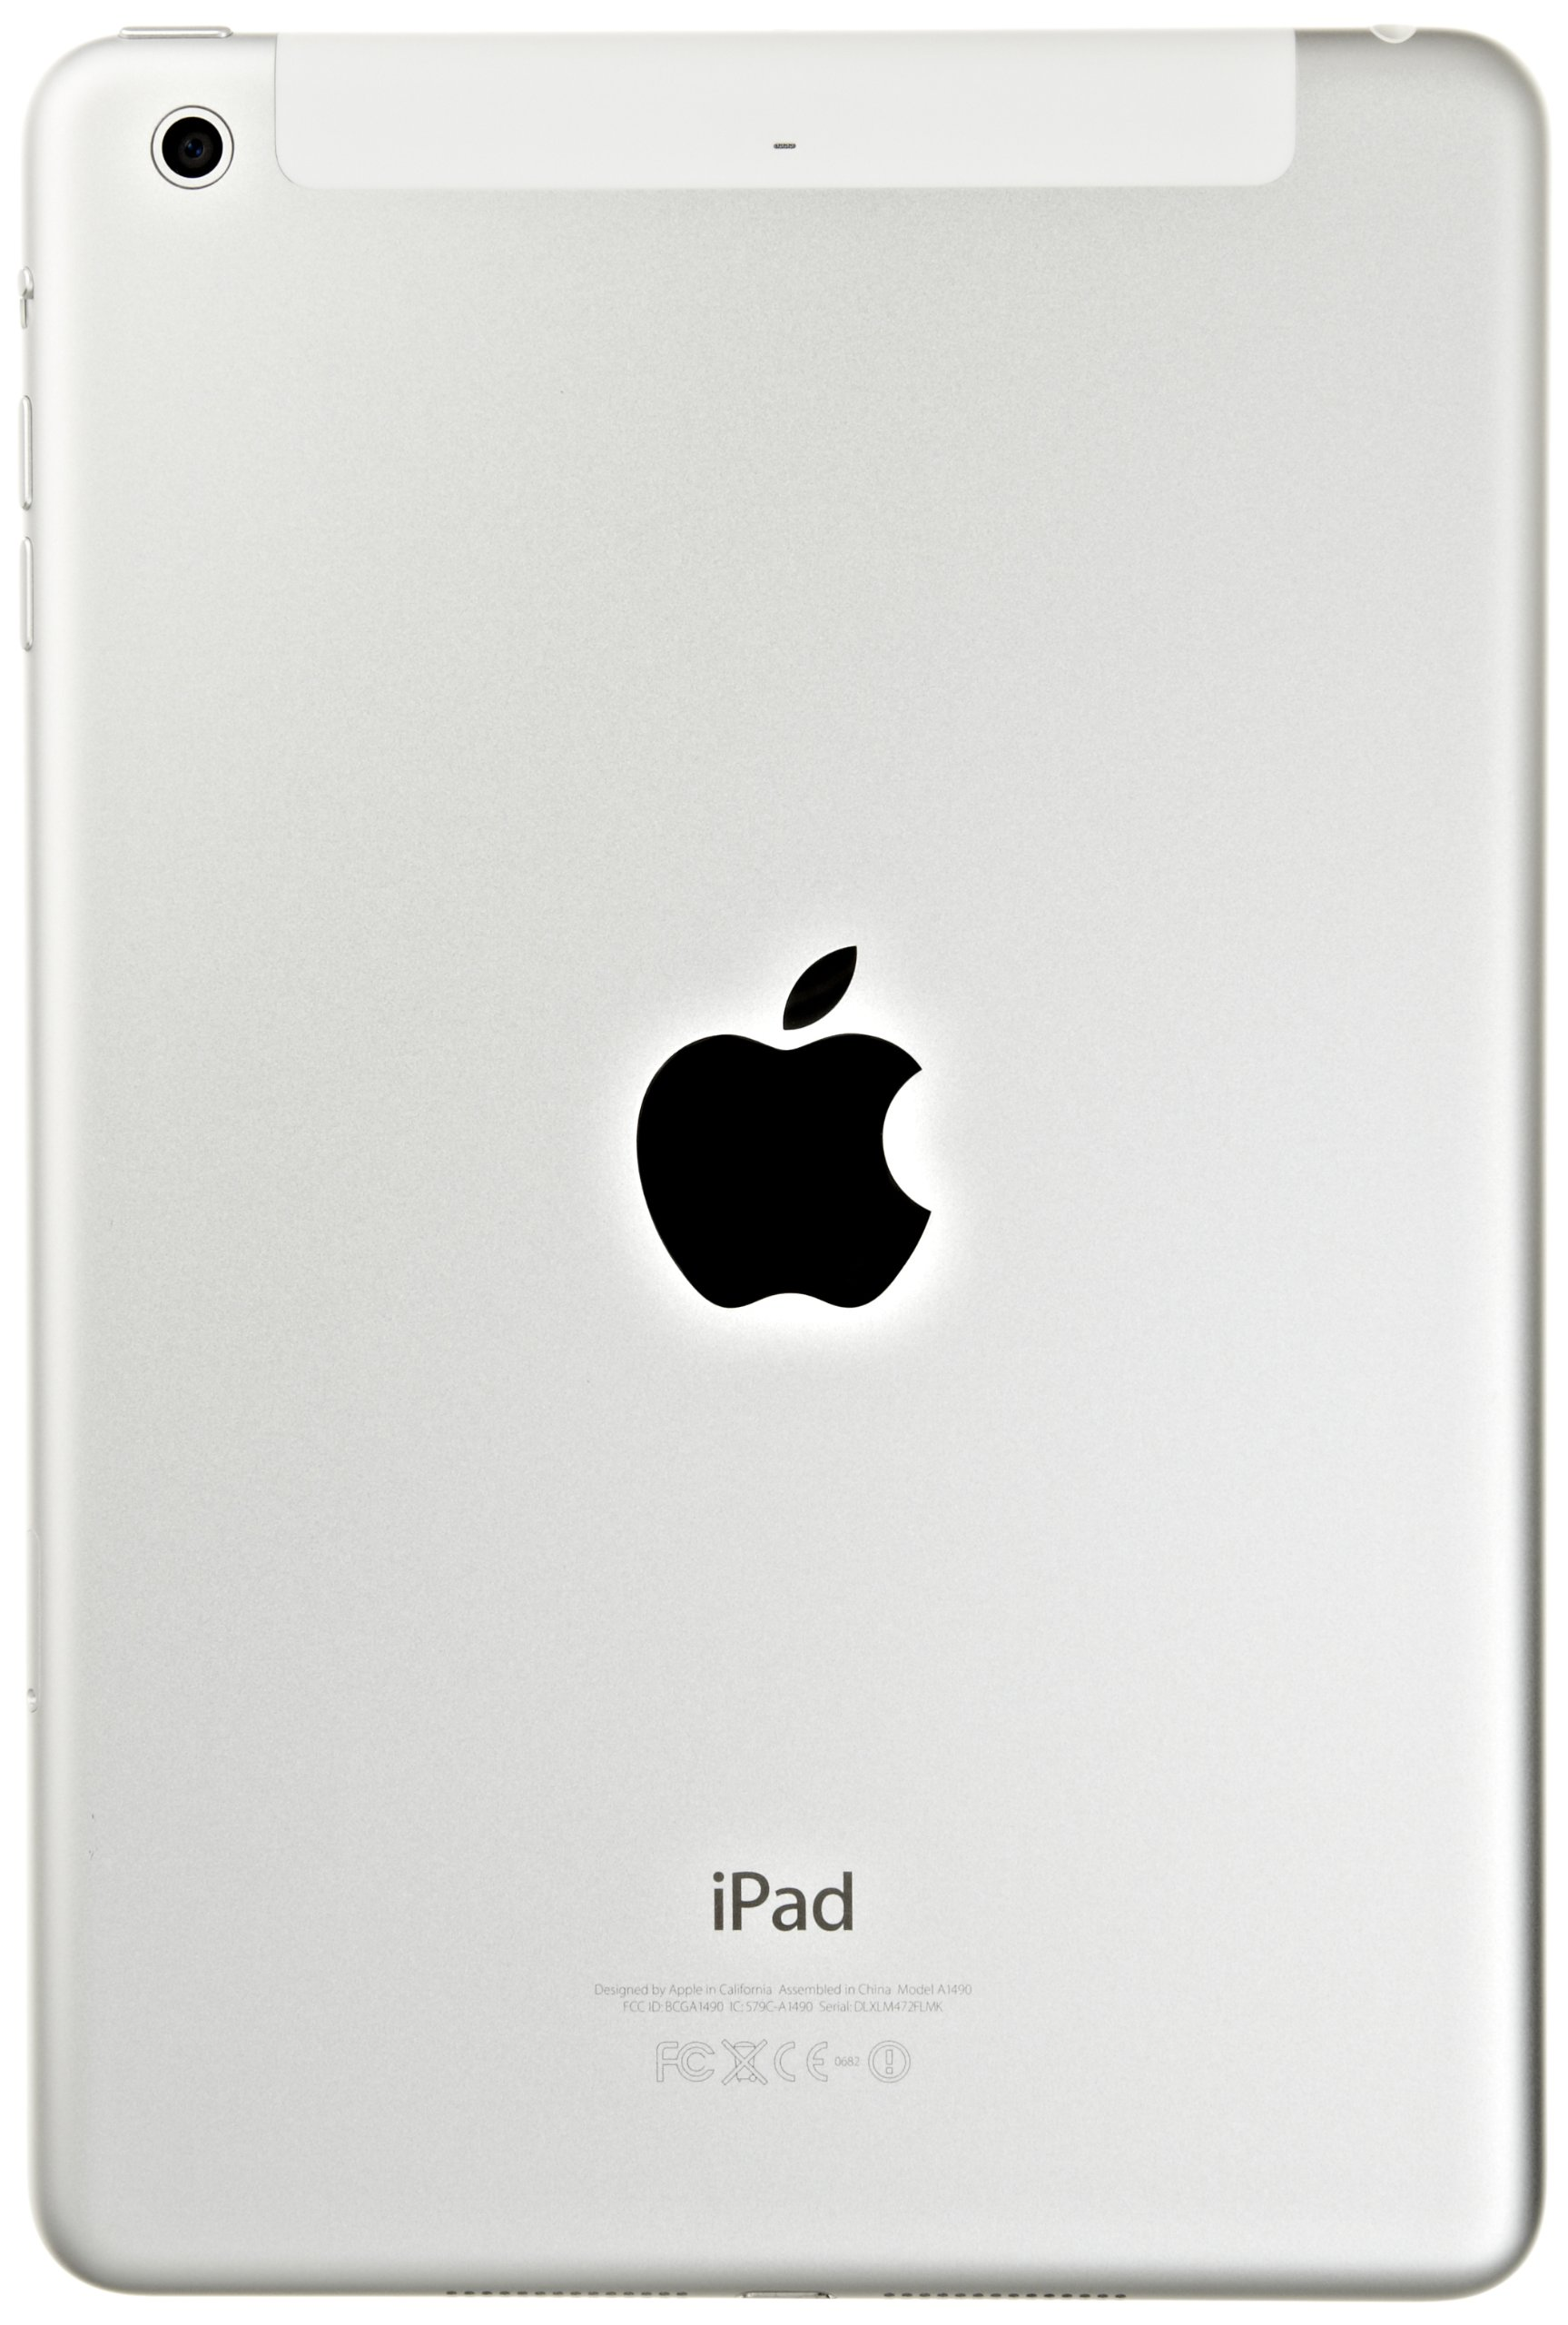 Apple iPad mini 2 with Retina Display MF075LL/A 16GB Memory Wi-Fi  4G LTE Verizon [White With Silver][Old Version] by Apple (Image #5)